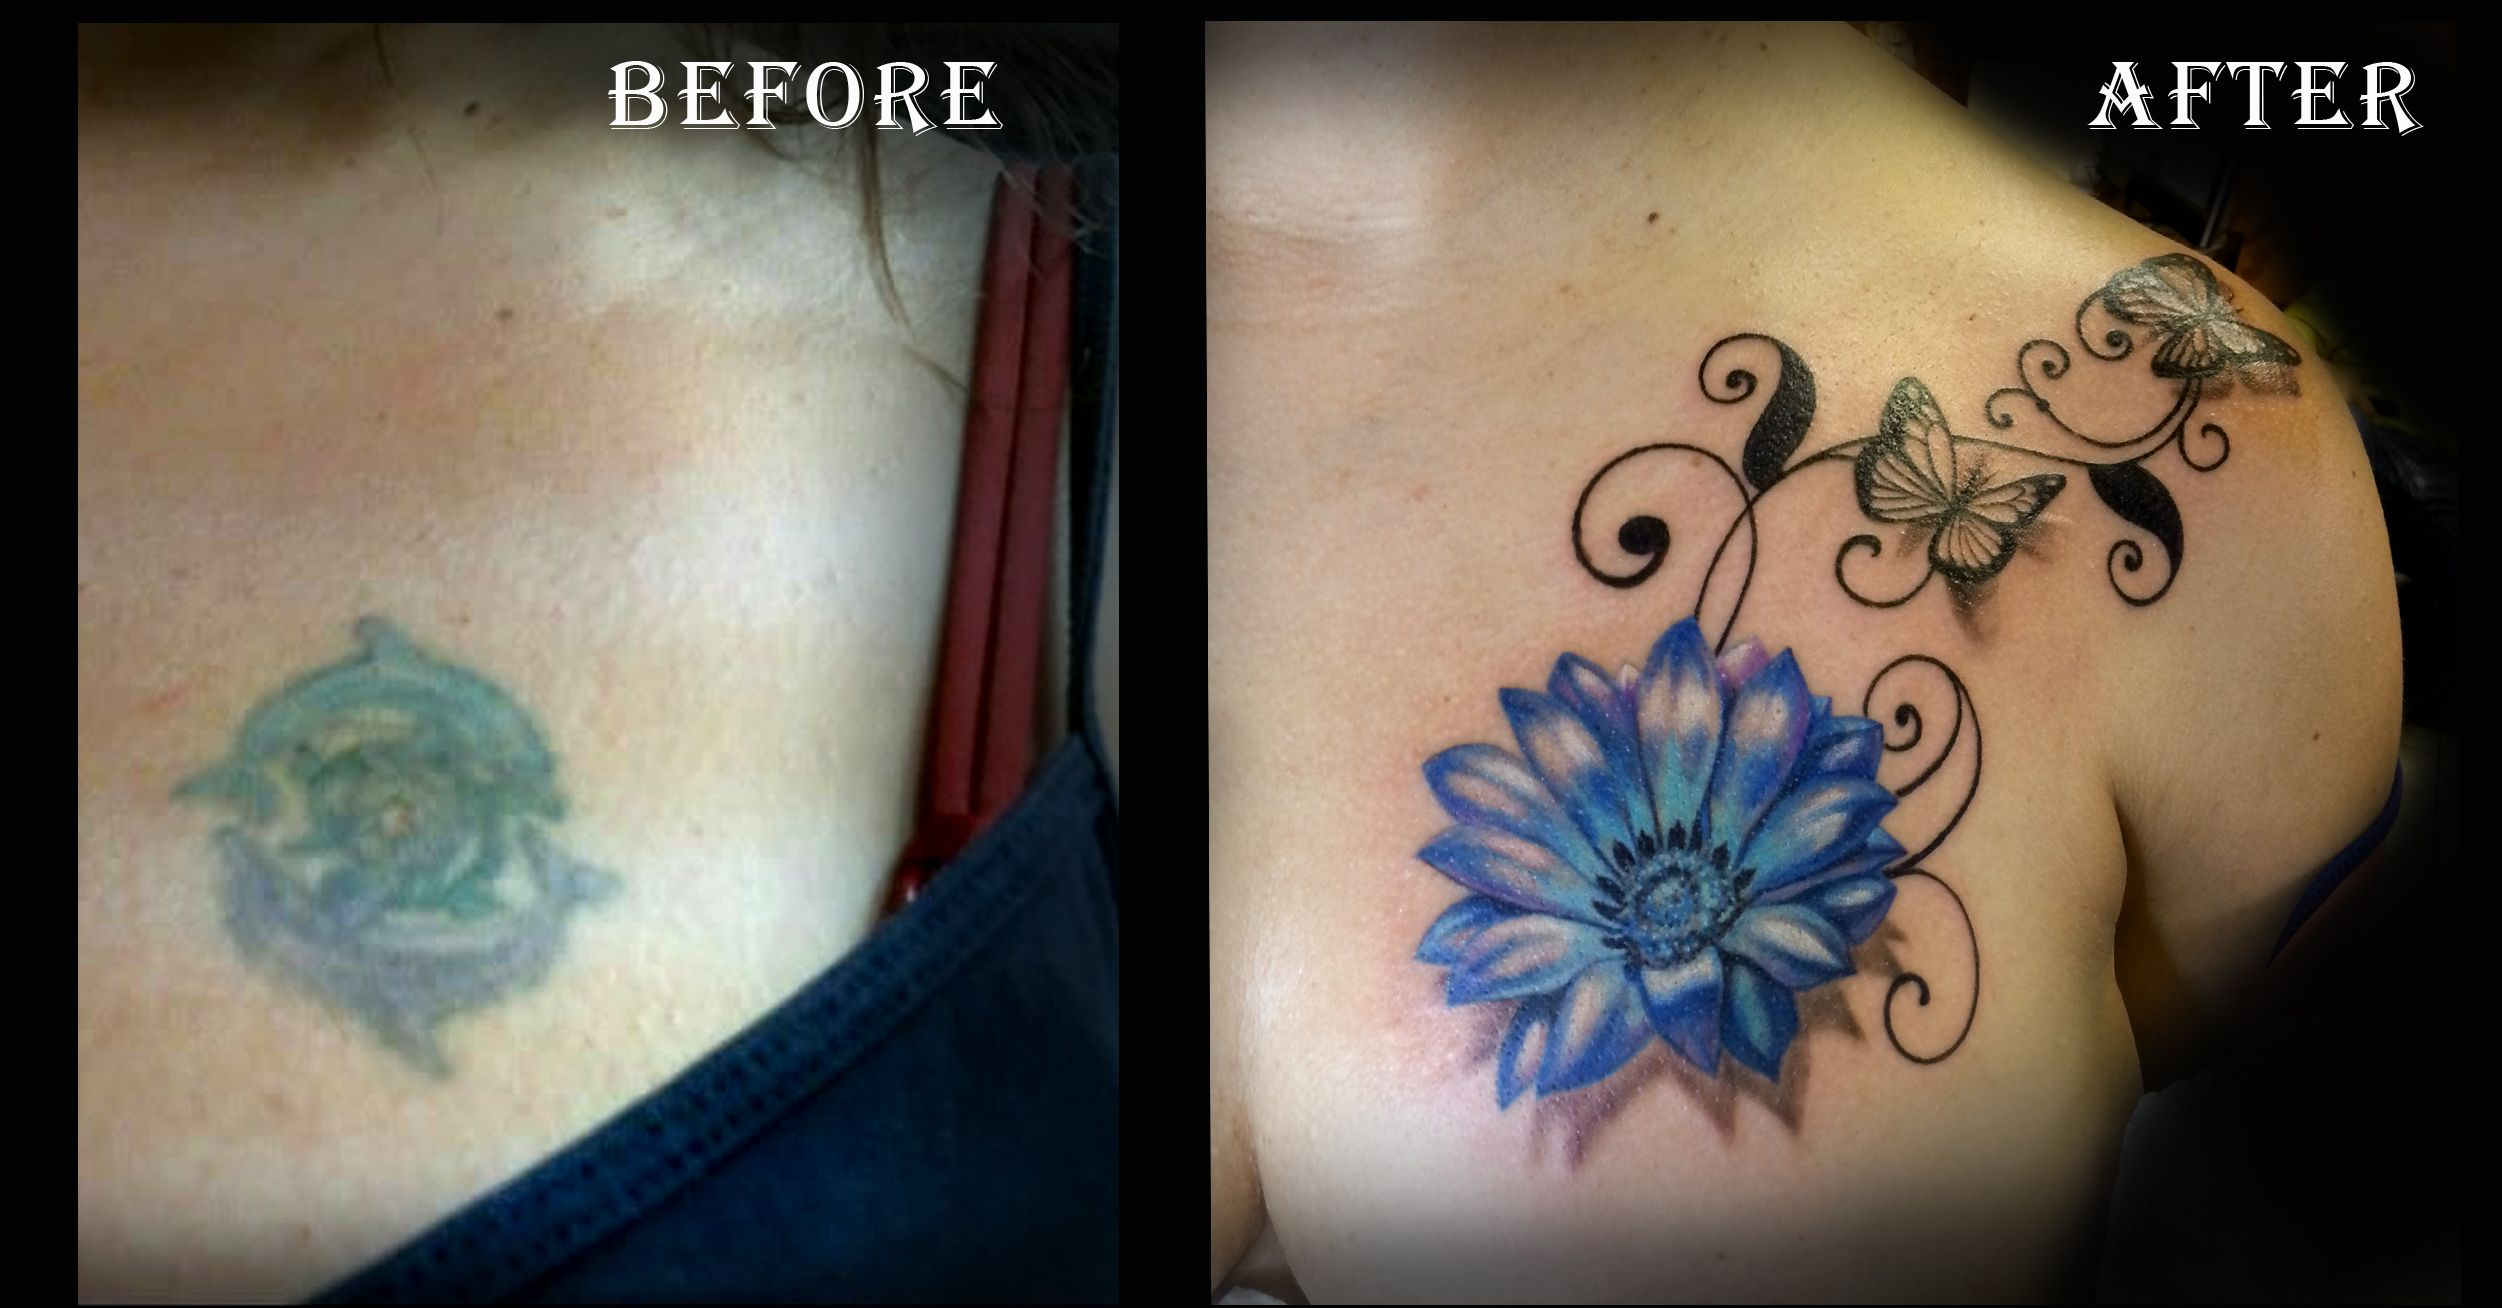 Before and after tattoo cover up tattoo blue flower